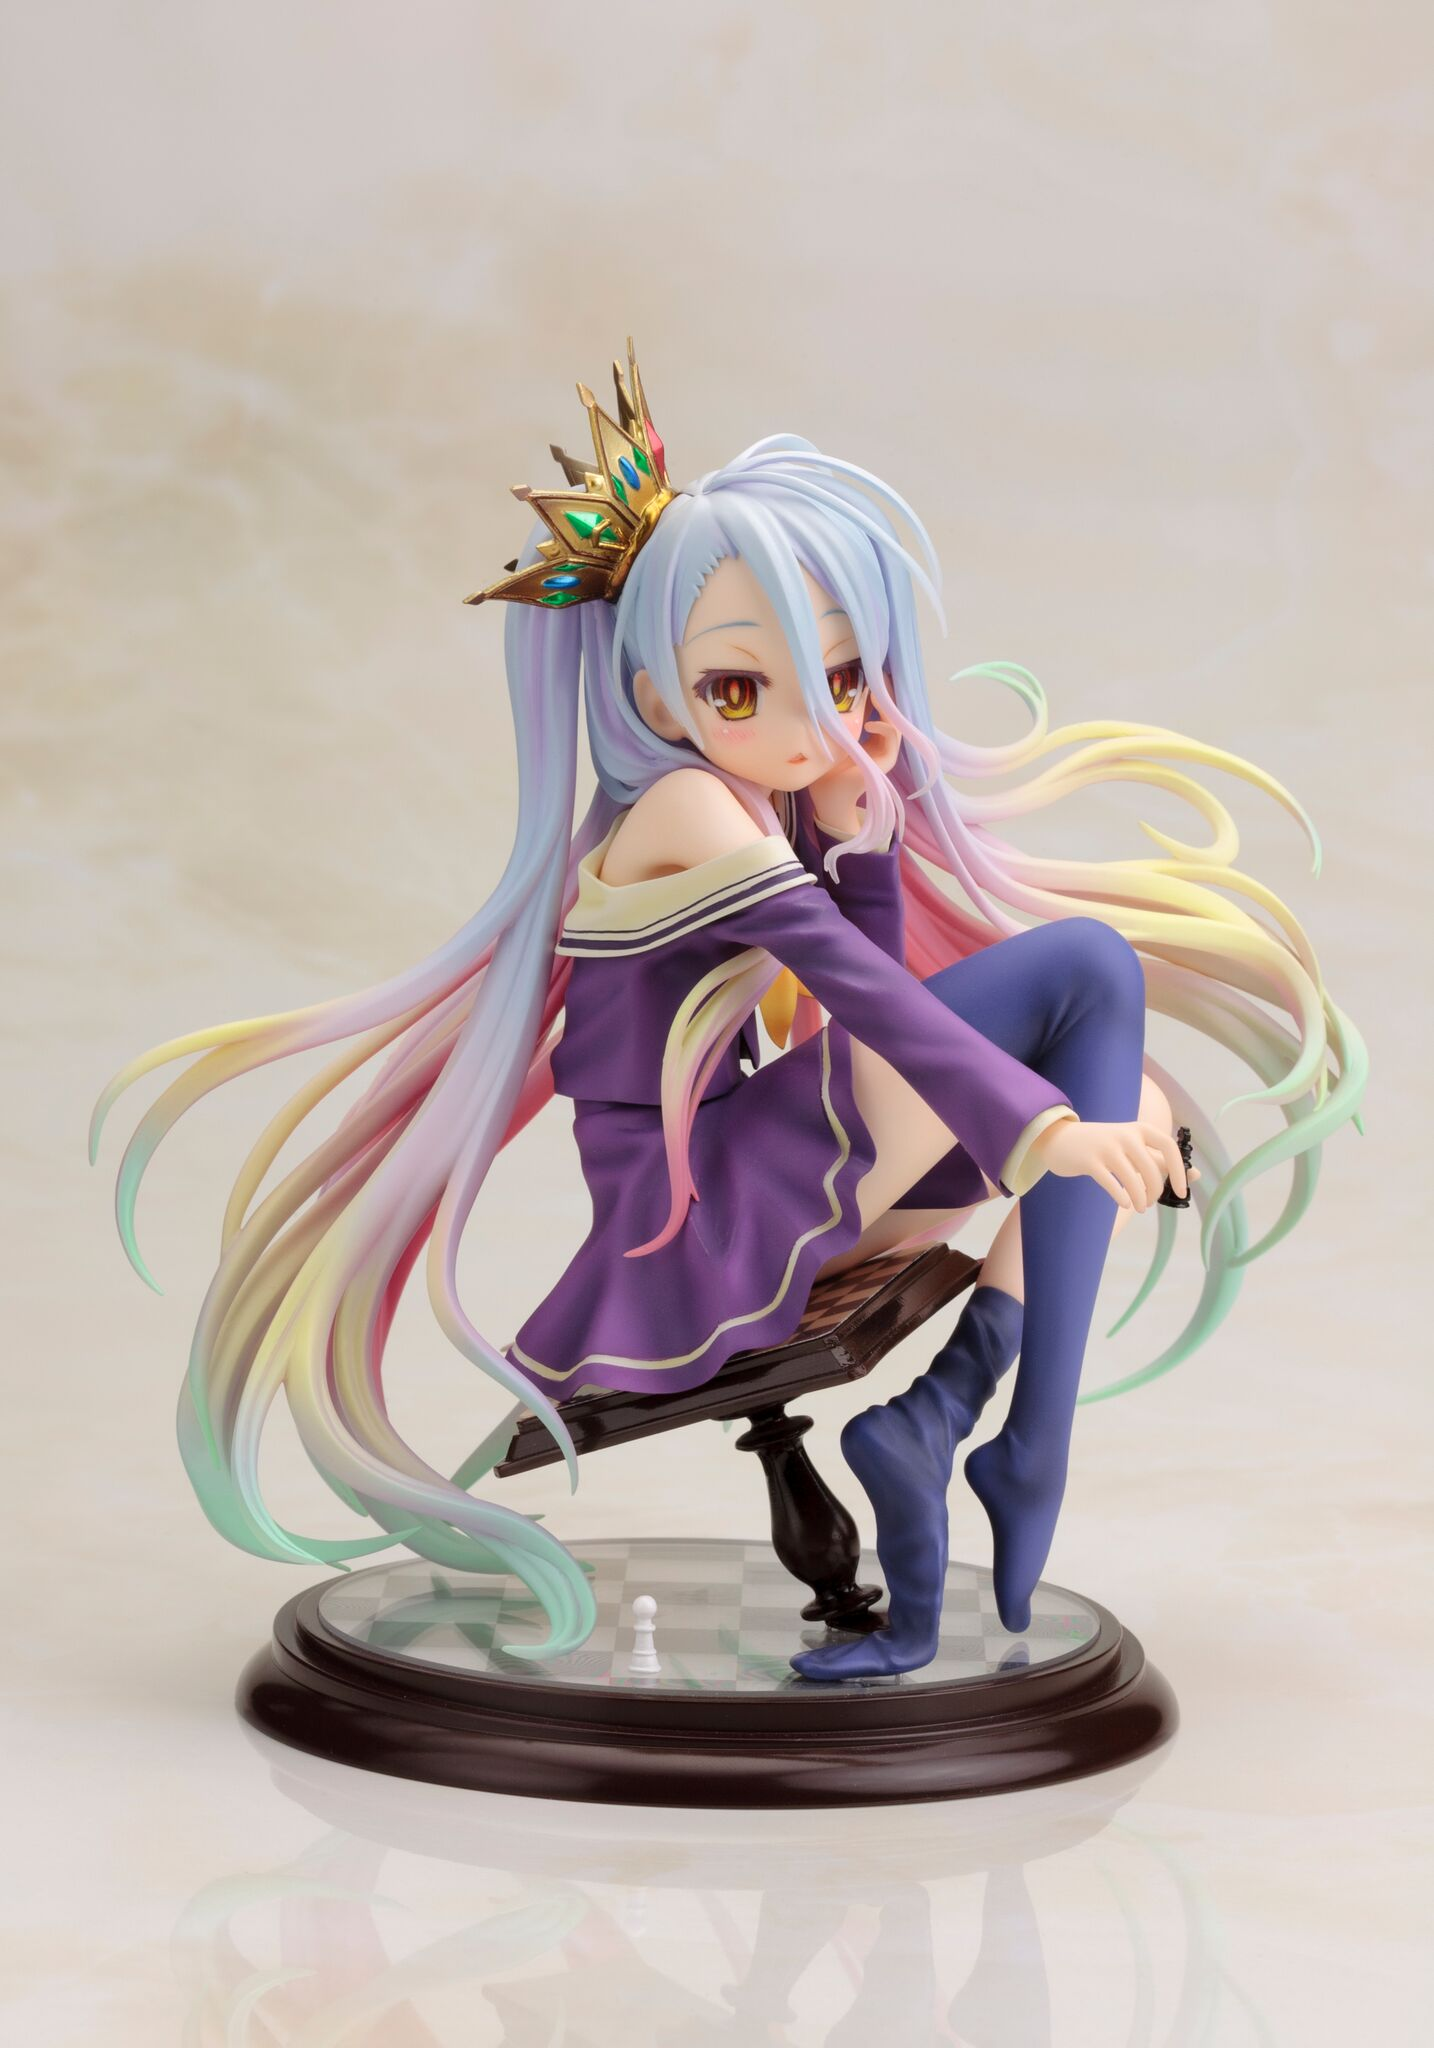 Shiro No Game No Life Ani Statue Figure 4934054783441